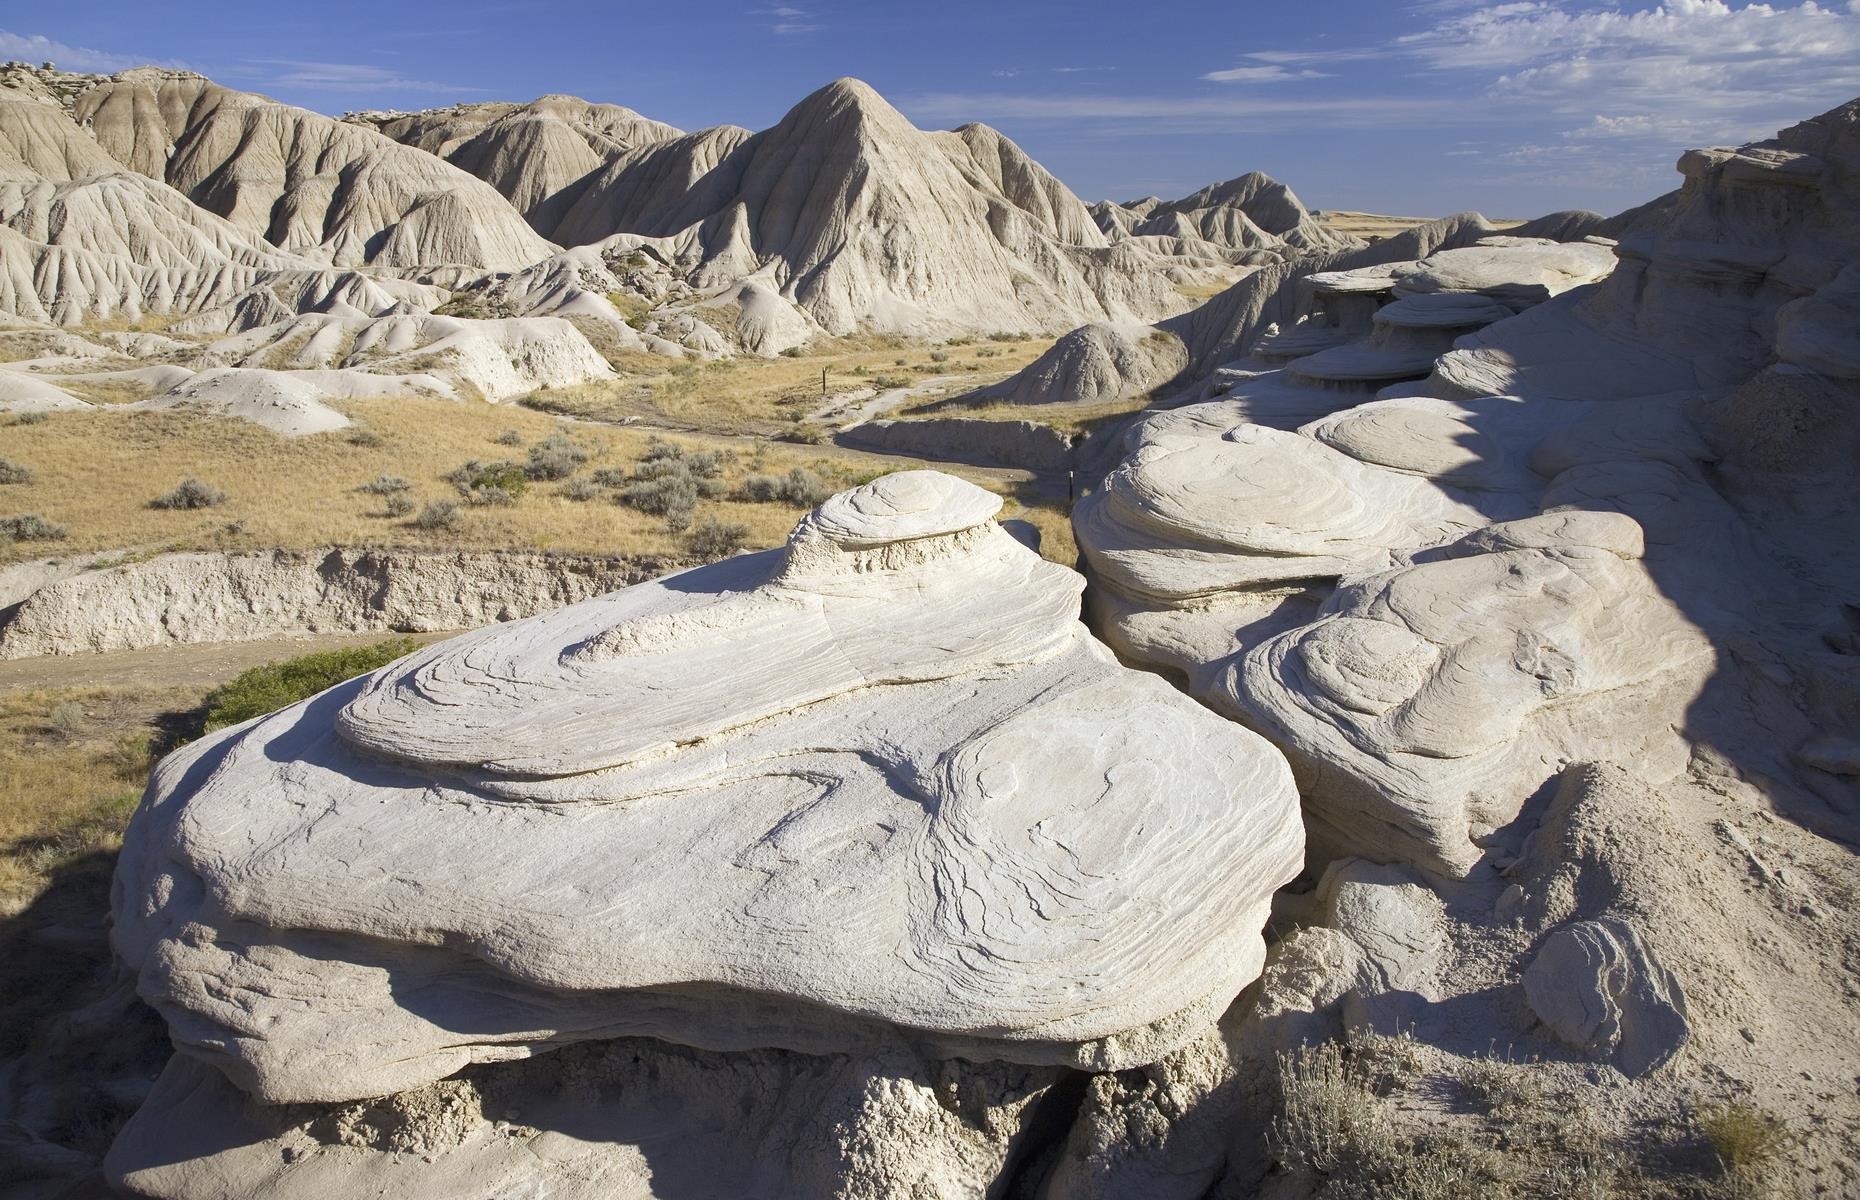 Slide 28 of 51: This badlands park is as oddly fascinating as its name suggests. The landscape of rock formations, from hoodoos to the eponymous 'toadstools', is often described as moon-like – but it also looks as if a few spaceships have landed on these plains. There's a campground area with toilets and day-use picnic tables. Hiking trails lead out from here and you can picnic en route, right amongthe rocks.